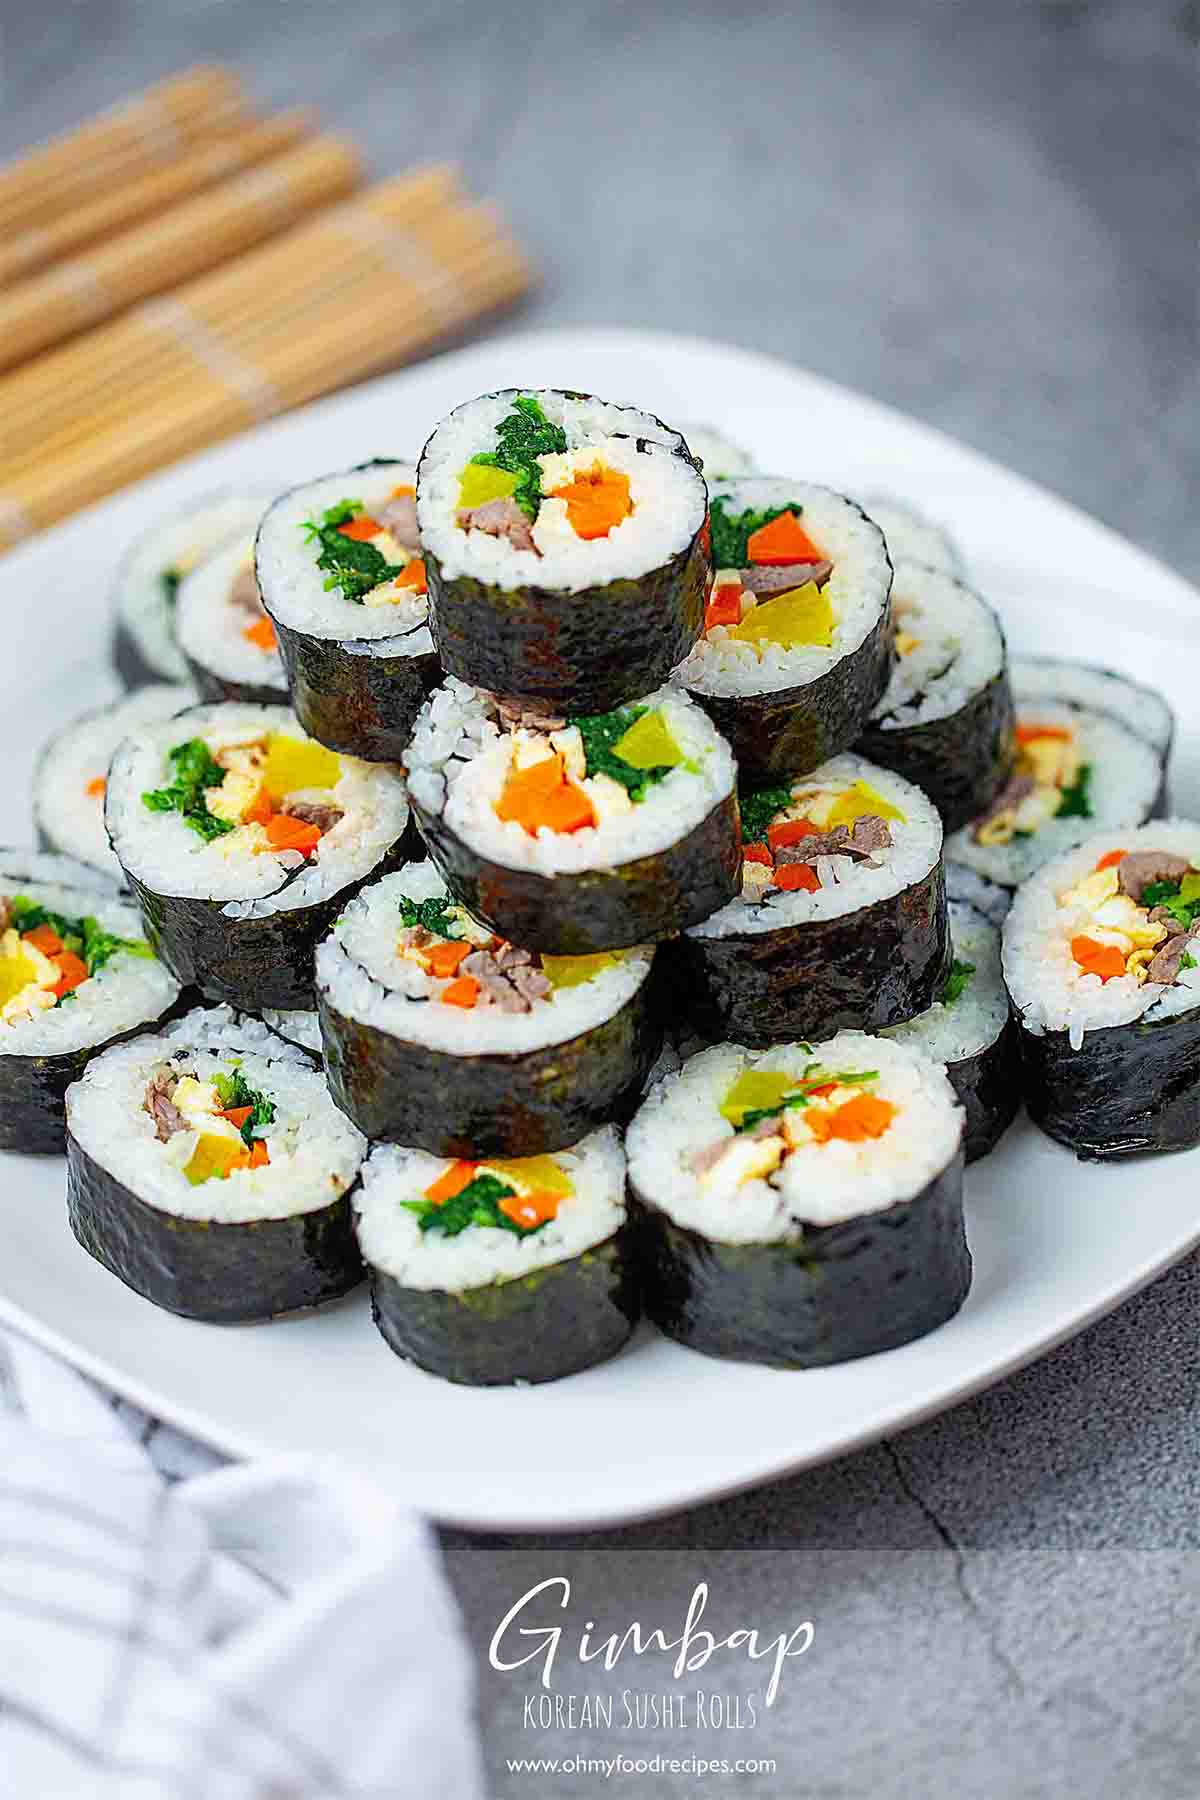 Korean sushi roll Kimbap or gimbap stack up on the white plate vertical